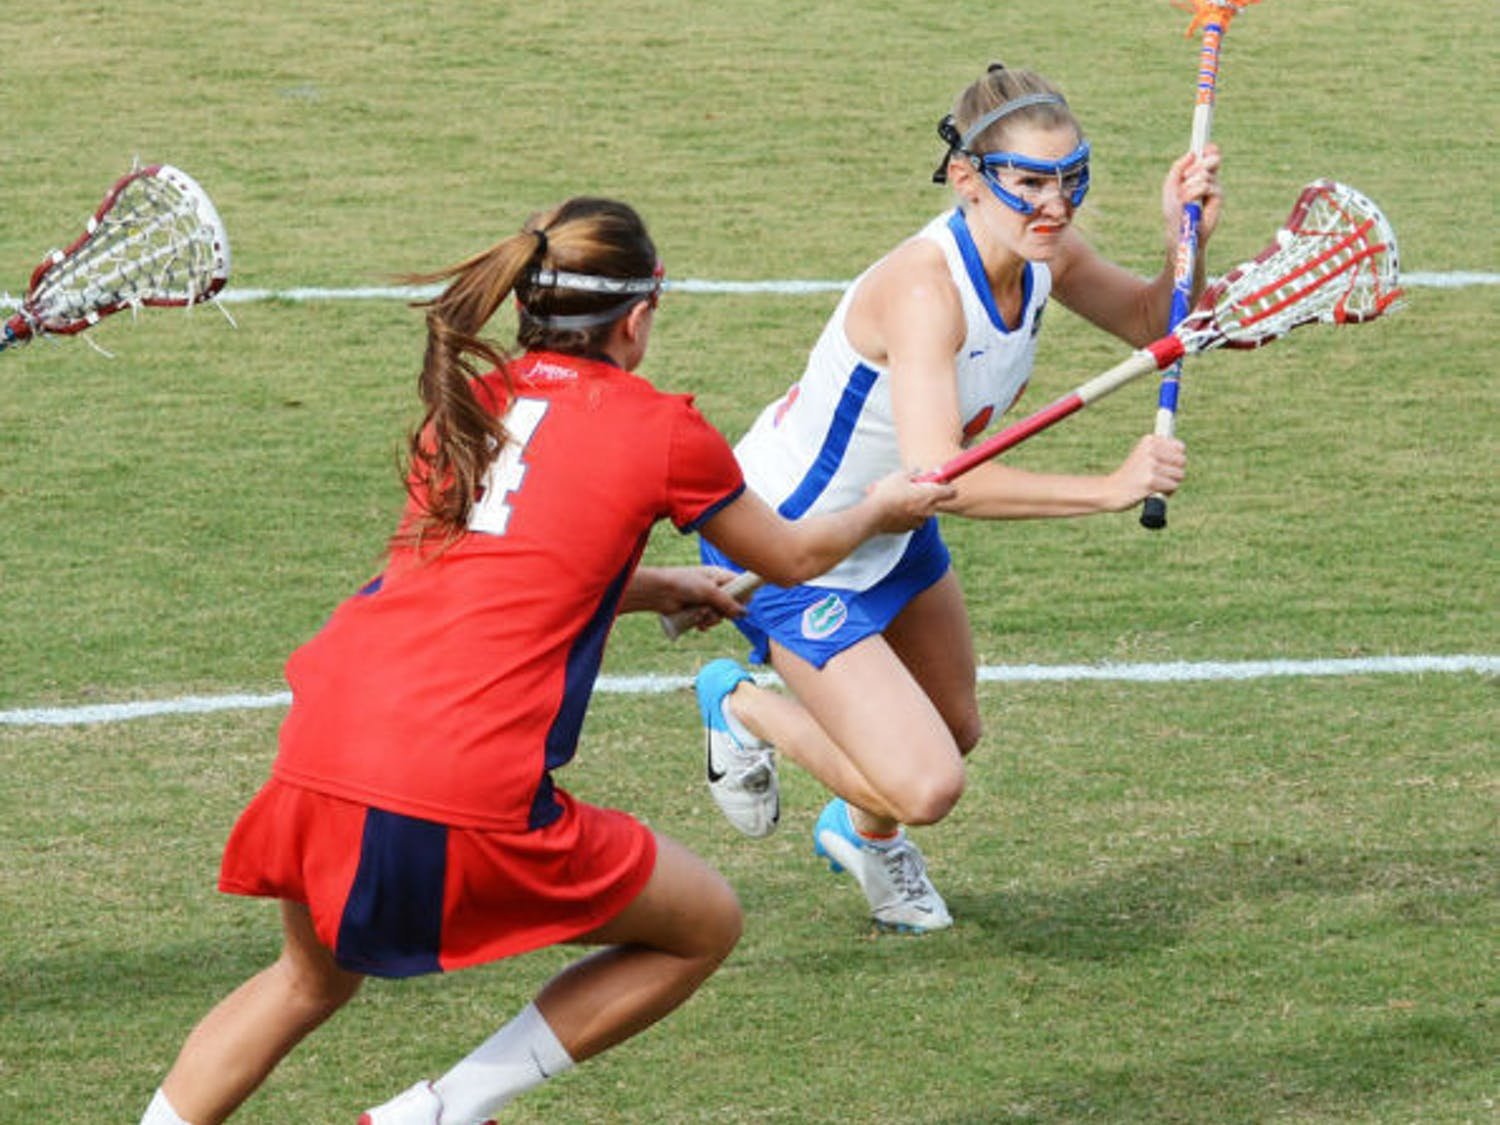 Sophomore midfielder Nora Barry runs past Stony Brook's Amber Kupres during the Gators' 16-9 win on Feb. 20 at Dizney Stadium. Barry scored three goals in Florida's 22-1 win against Stetson on Tuesday.